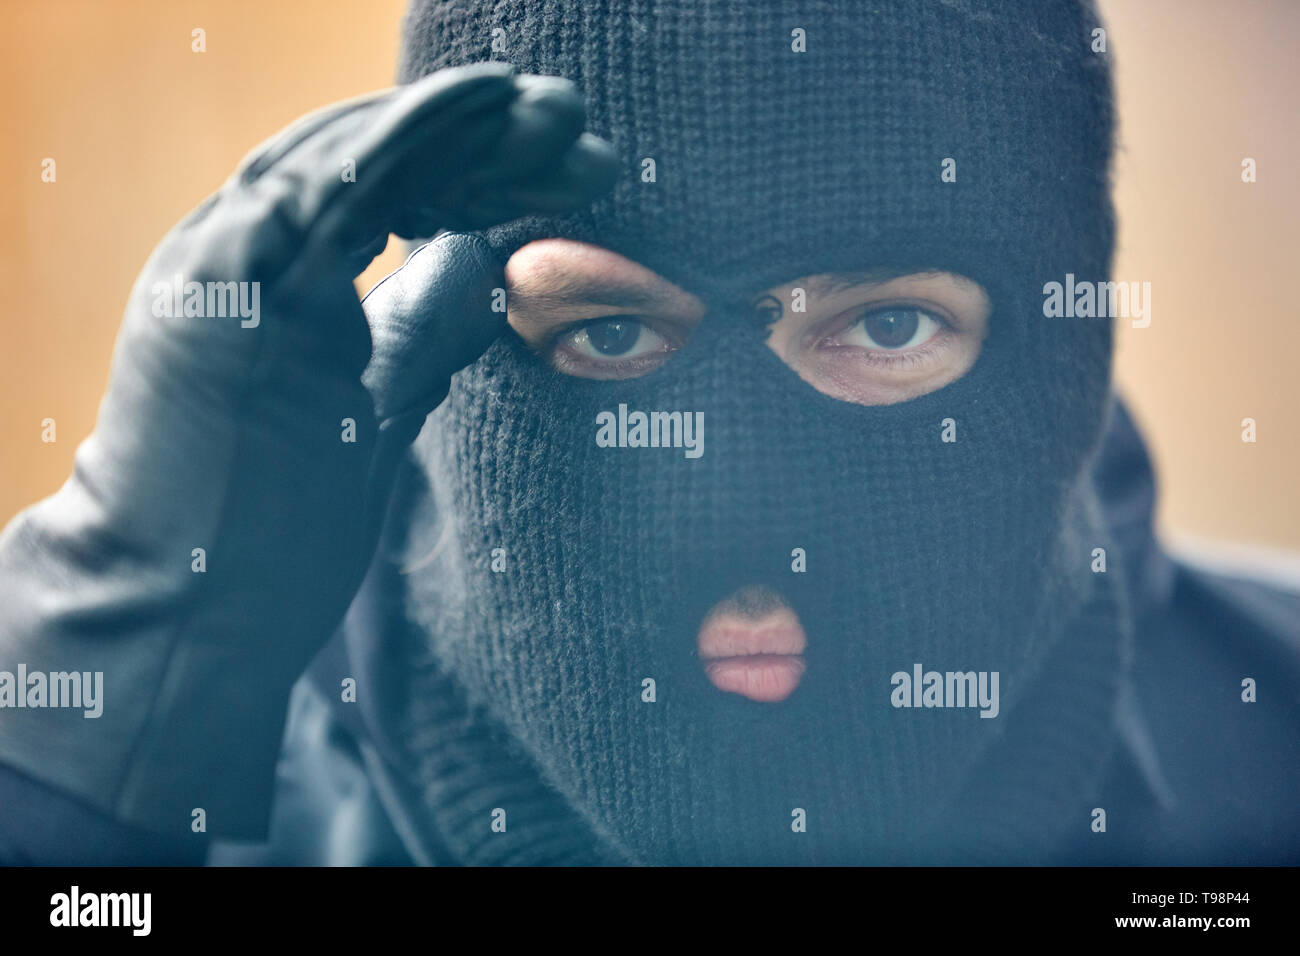 Police SEK Einsatzkraft with storm mask looks through a window into a house - Stock Image